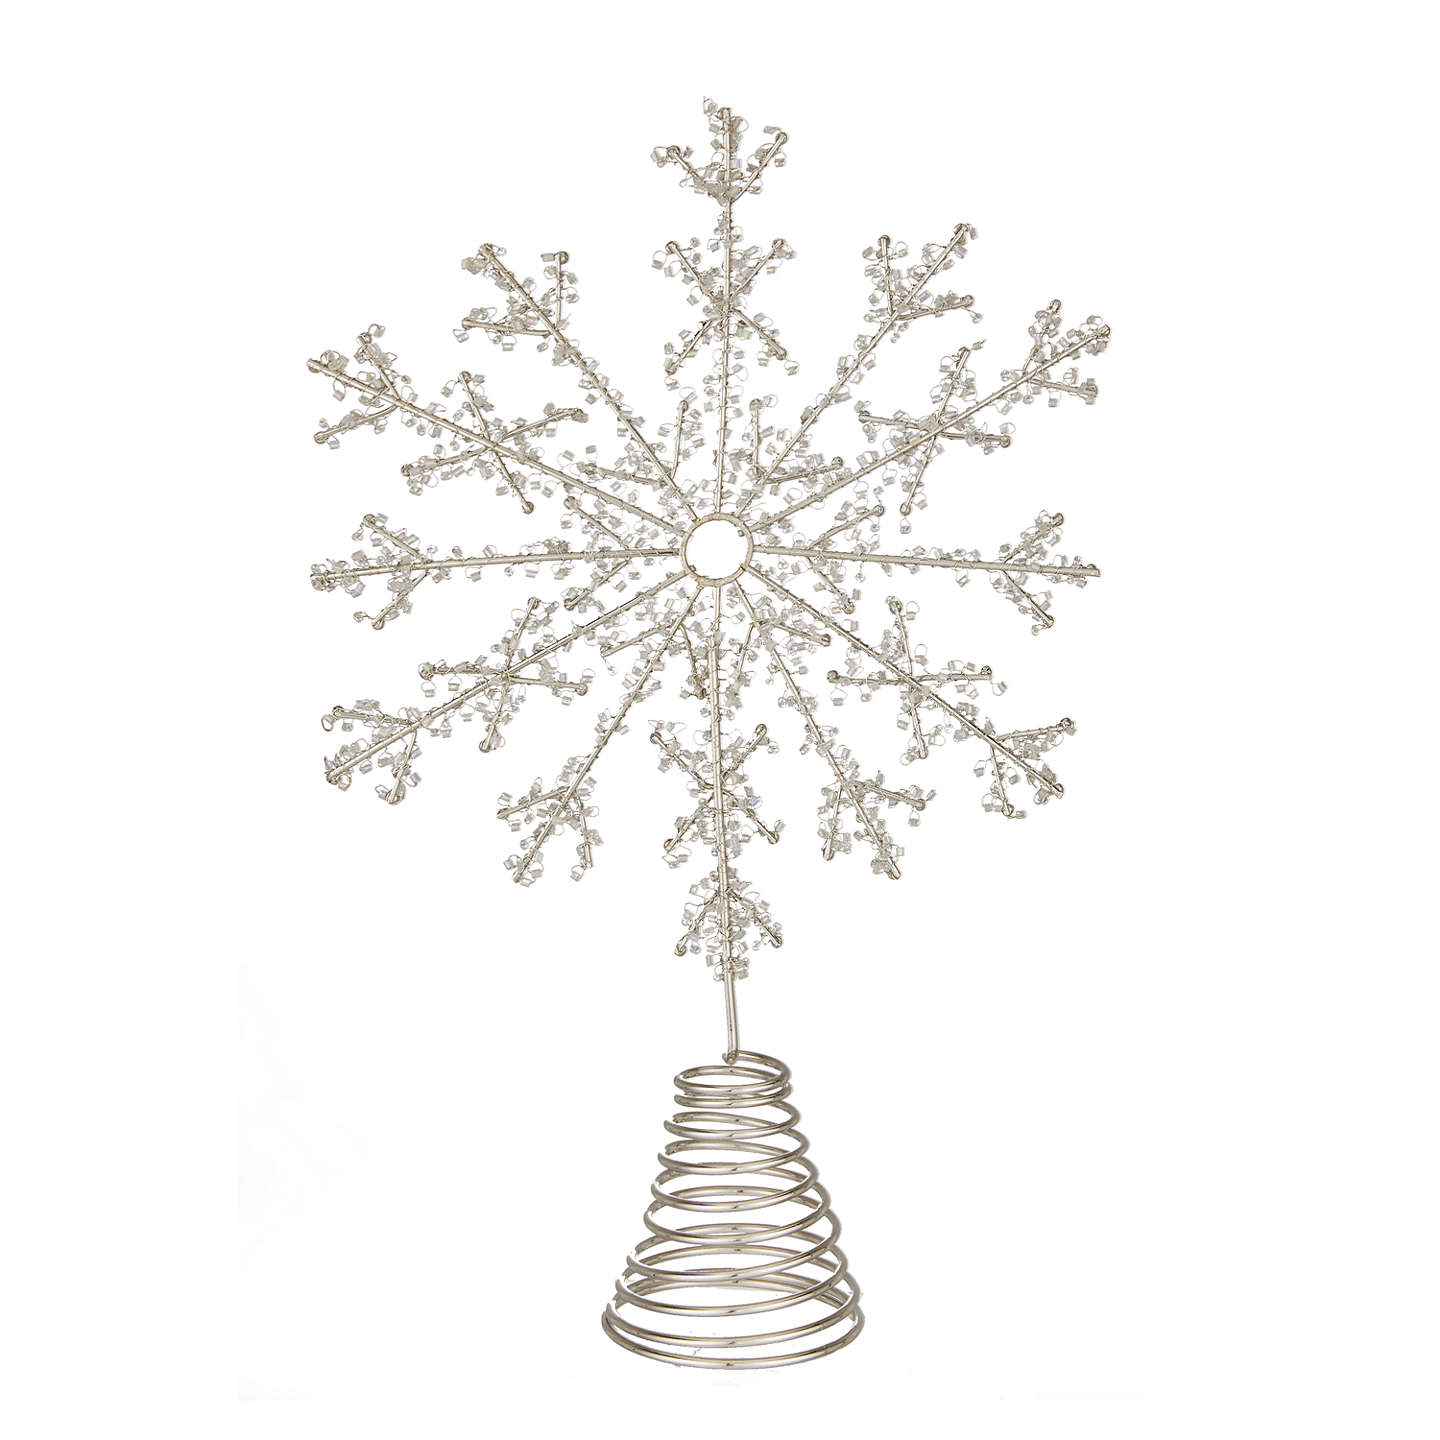 Buyjohn Lewis Winter Palace Beaded Snowflake Tree Topper, Silver Online